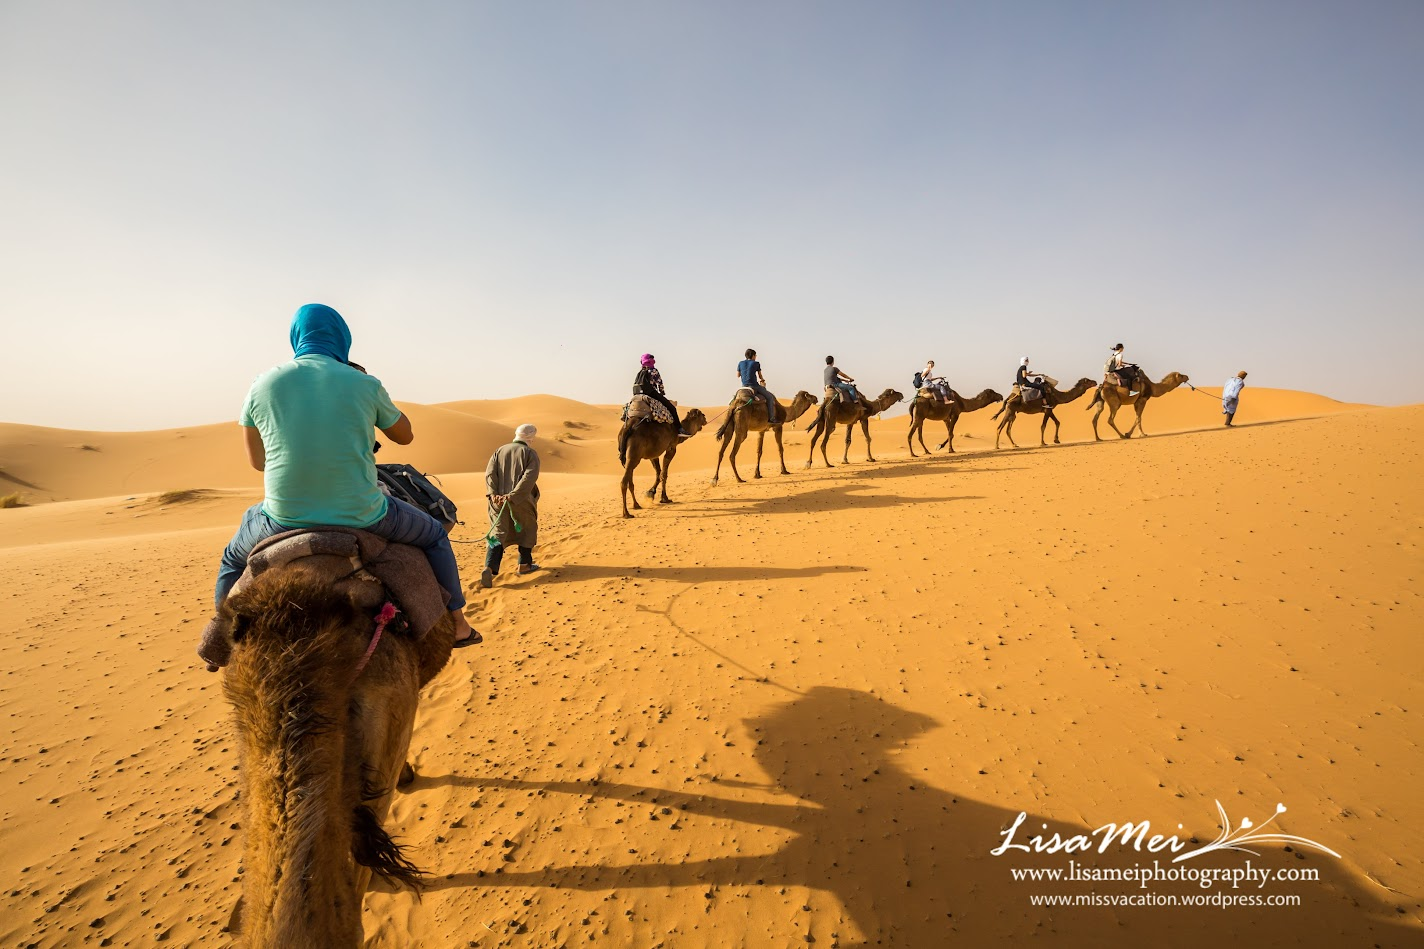 He even stopped the camels and helped us to take photos of our group, how  wonderful!